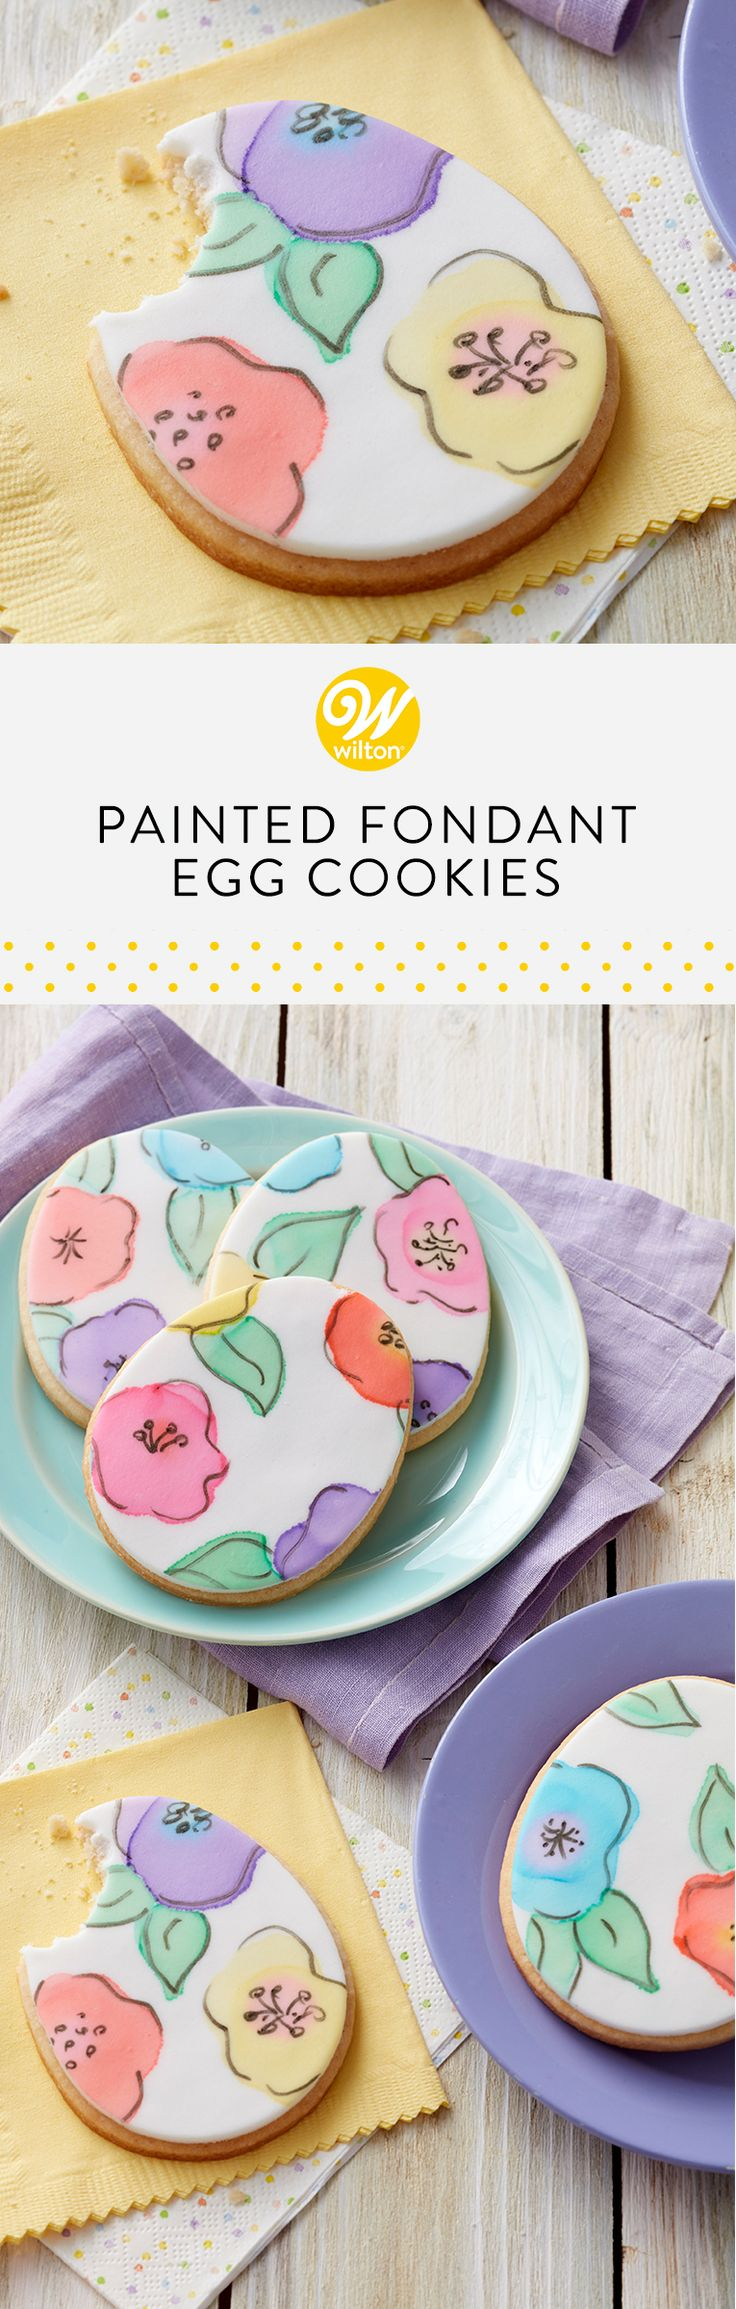 Get your art on by using icing colors as watercolors and coloring Easter egg cookies! #wiltoncakes #cookies #cookieideas #easter #eastercookies #easterideas #easterdesserts #fondant #painted #paintedcookies #inspiration